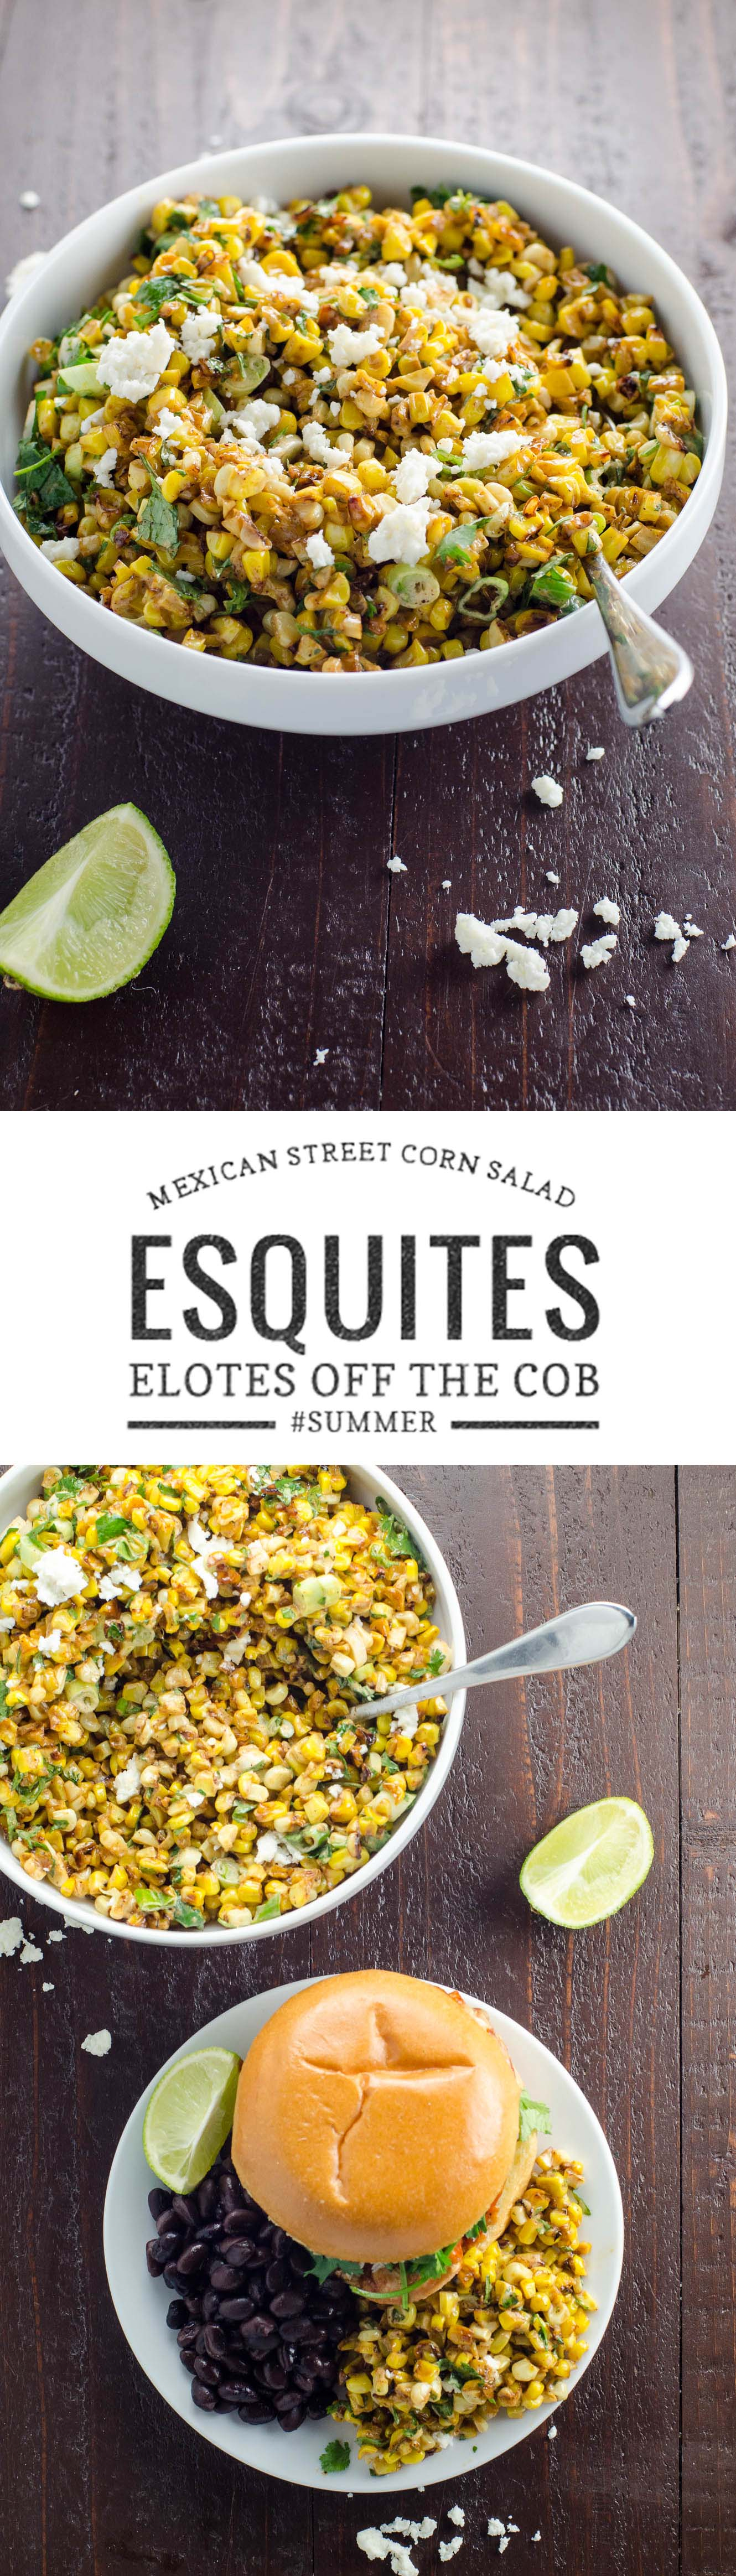 Esquites, or Mexican street corn salad, is a wonderful savory side dish that you won't be able to get enough of. It's quick to make and scales beautifully.